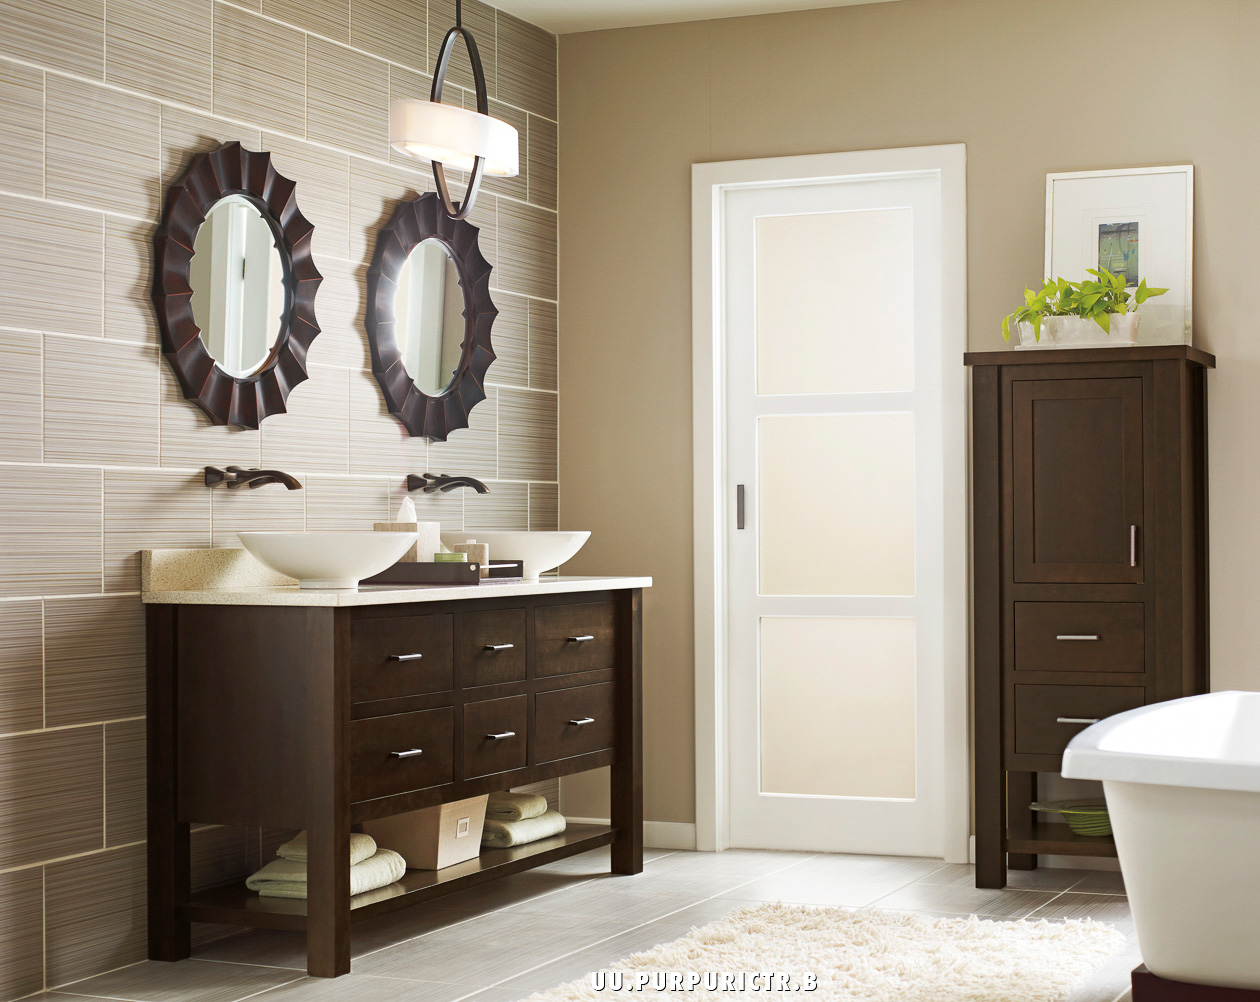 013-OmegaBathCabinetry_14